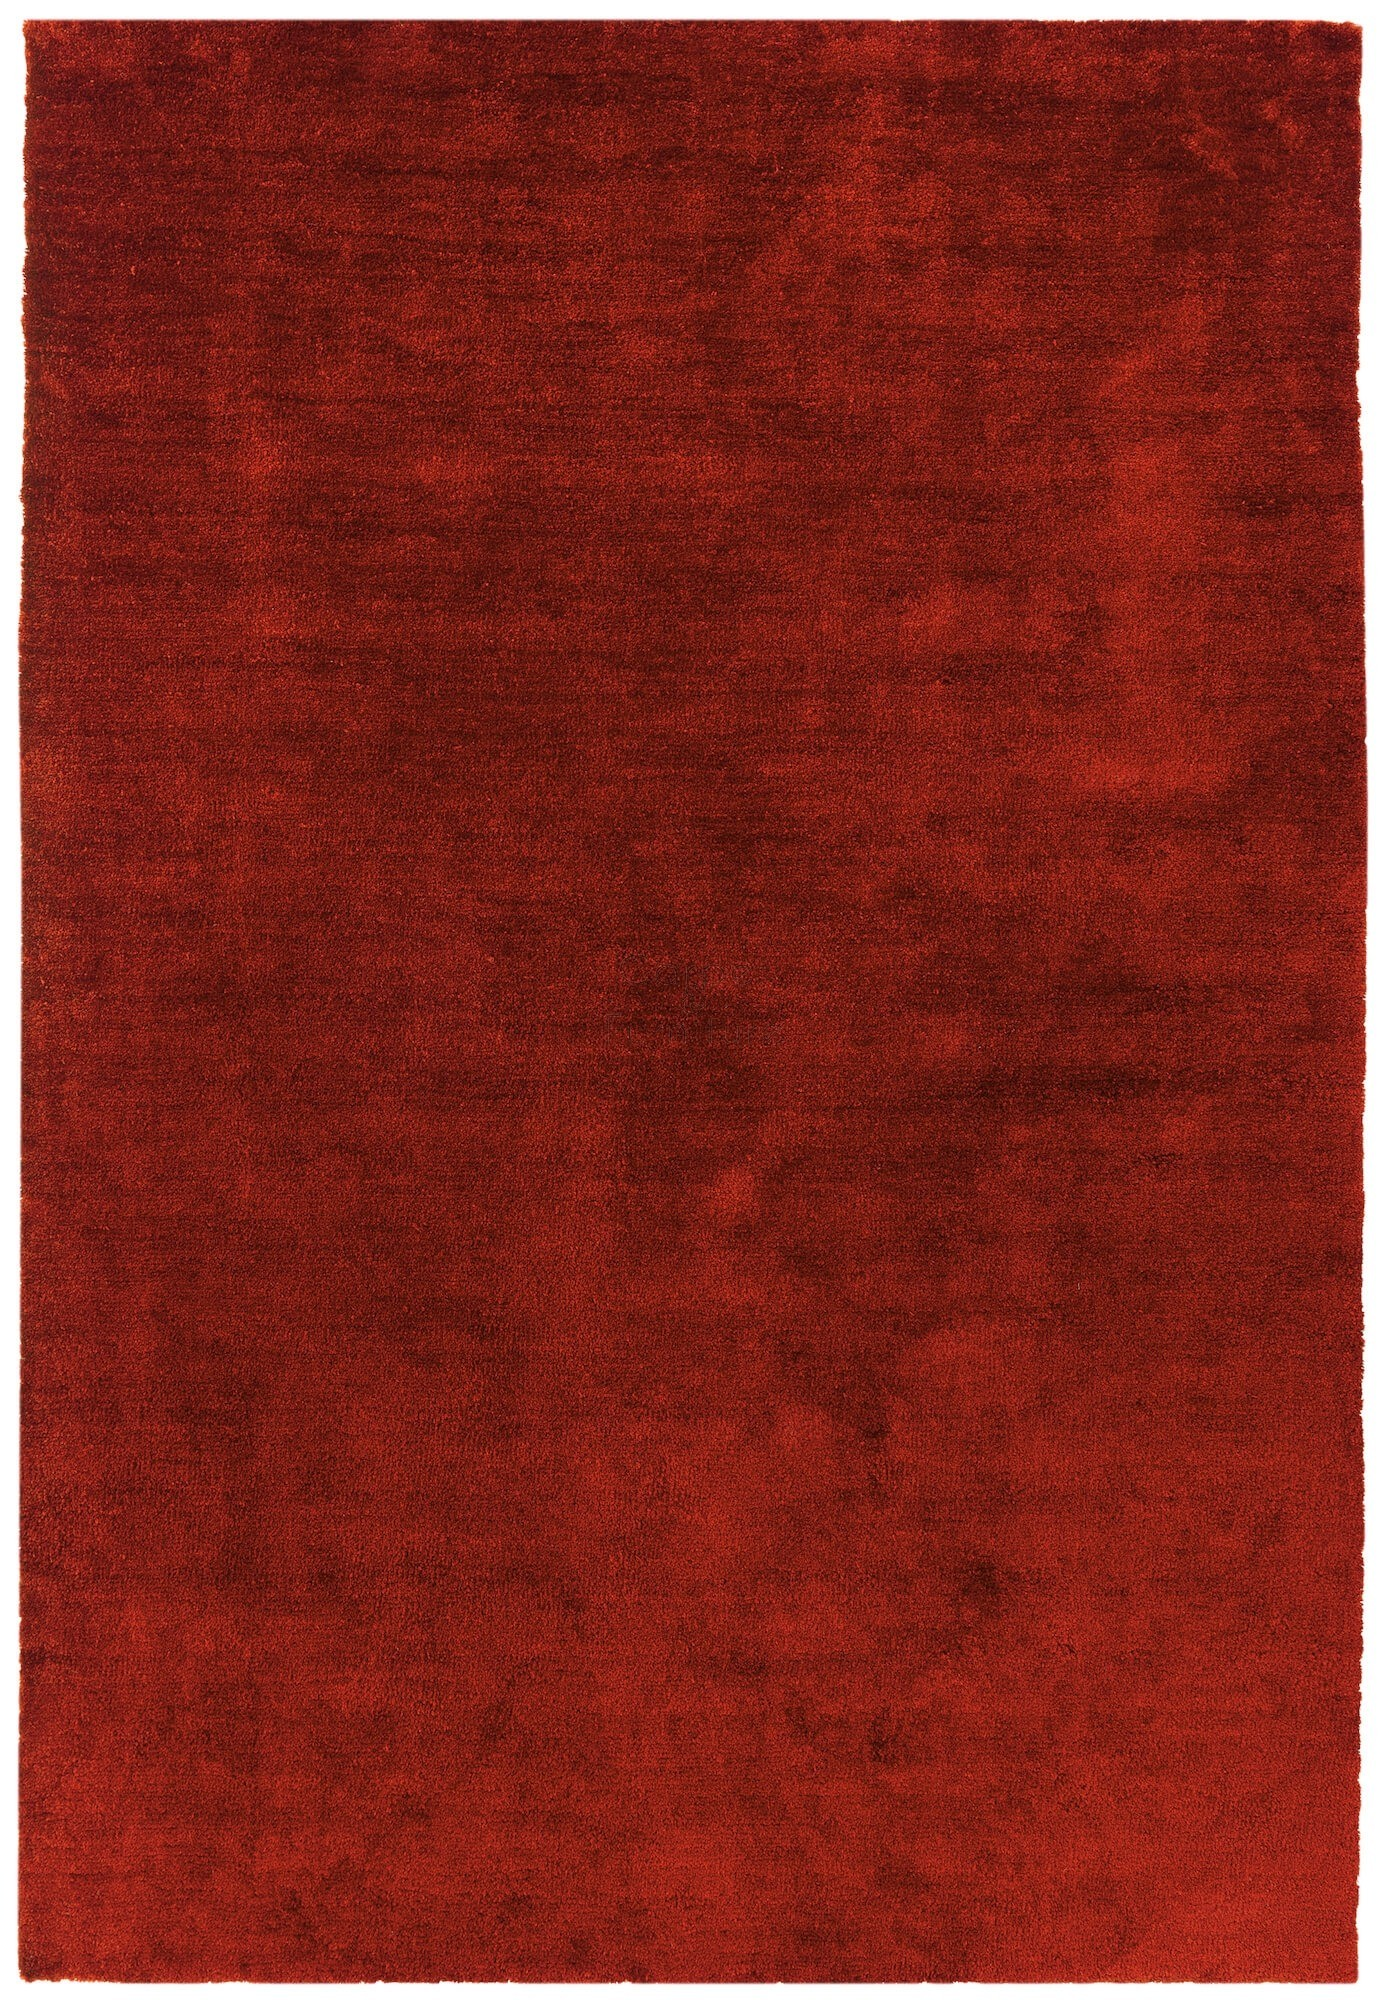 Rug - Red - Size 120 x 170 cm (4' x 5'7